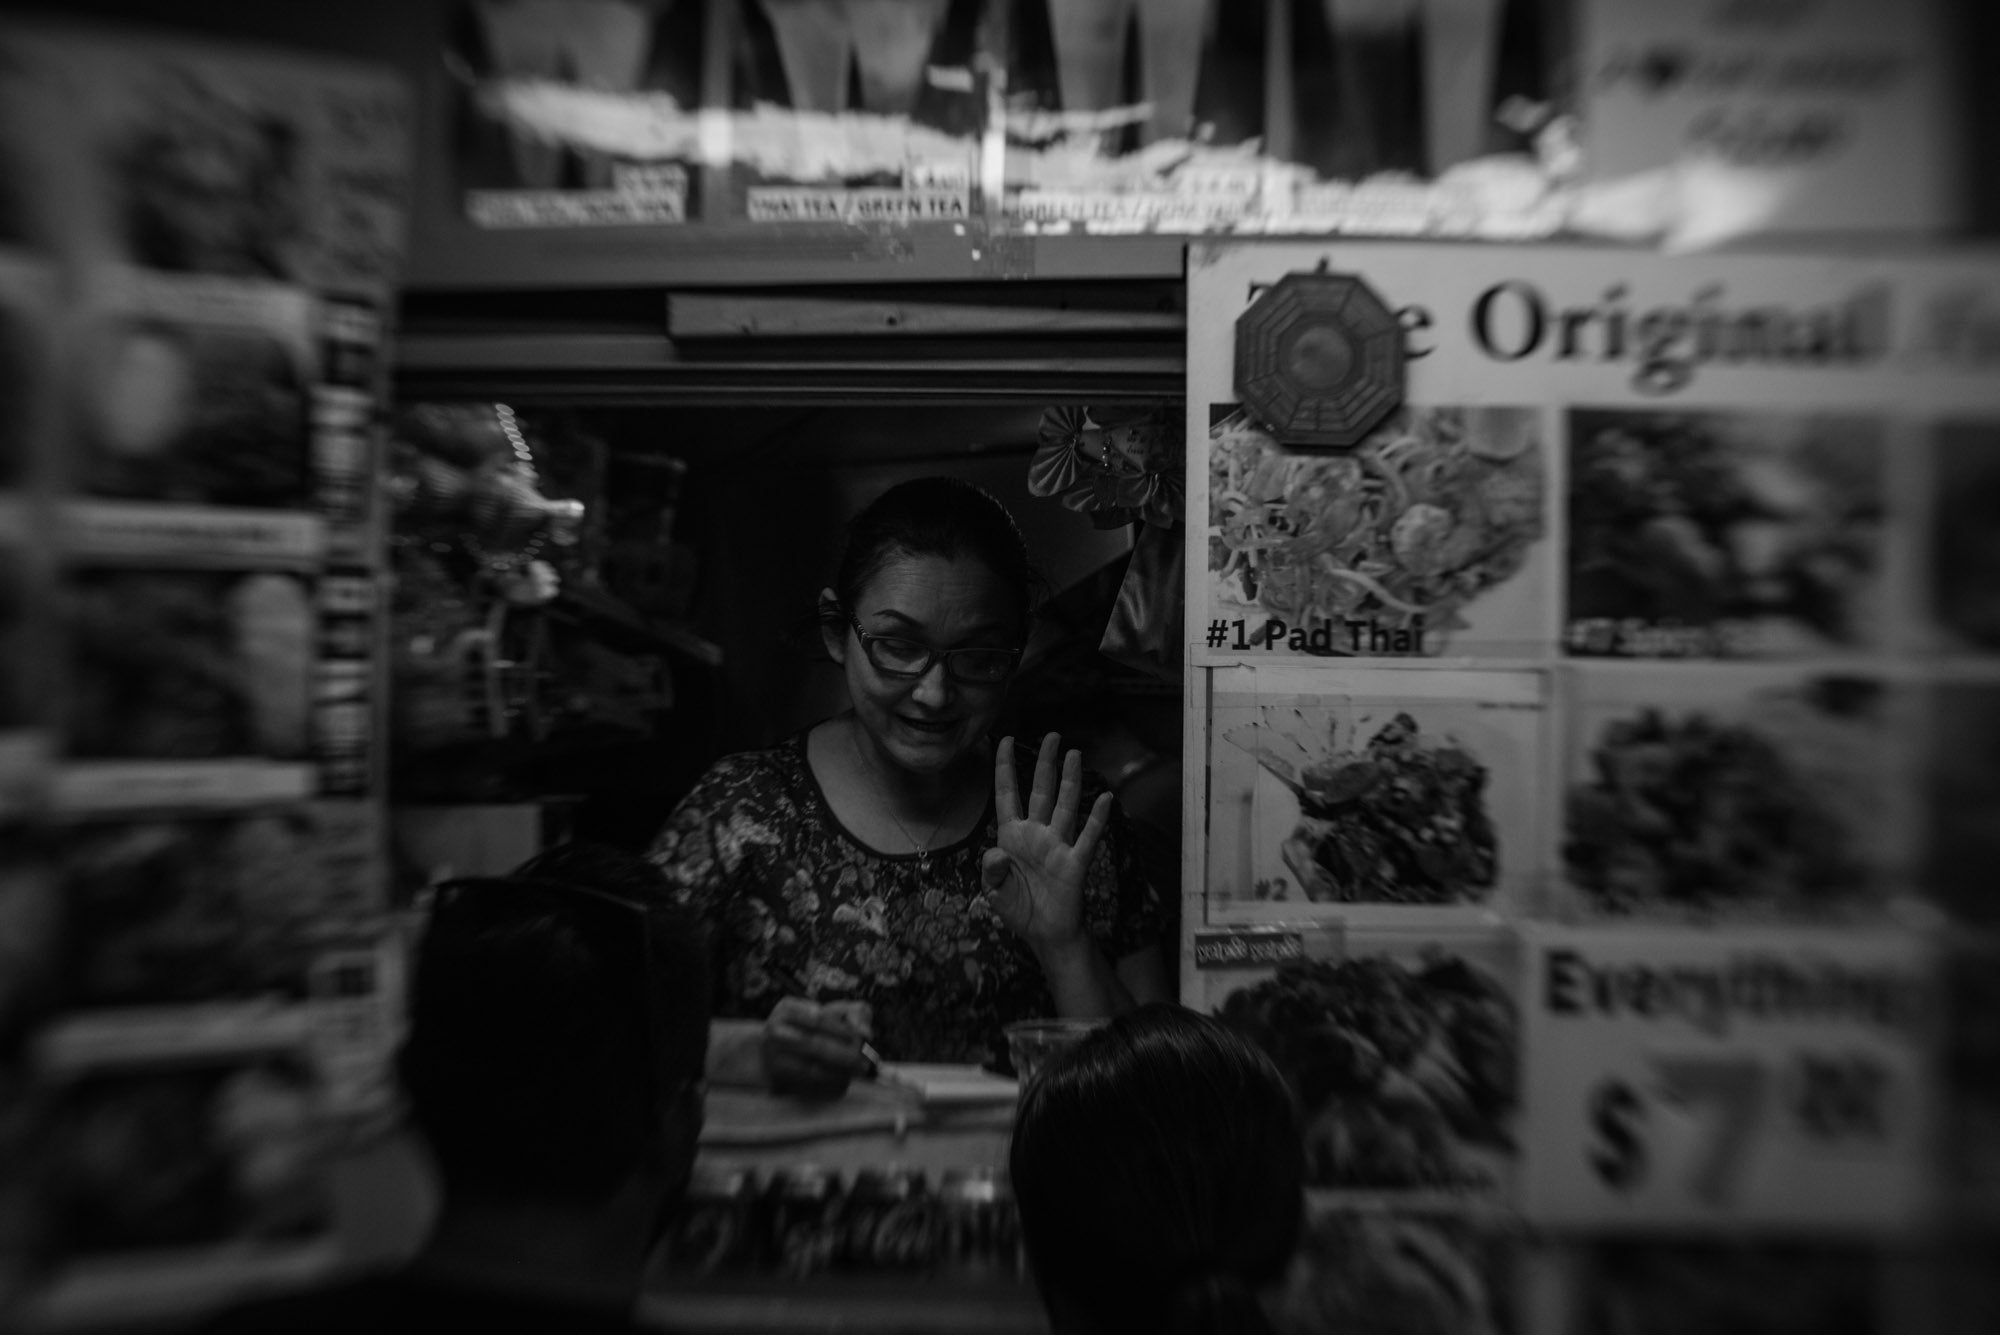 Woman in food truck taking order